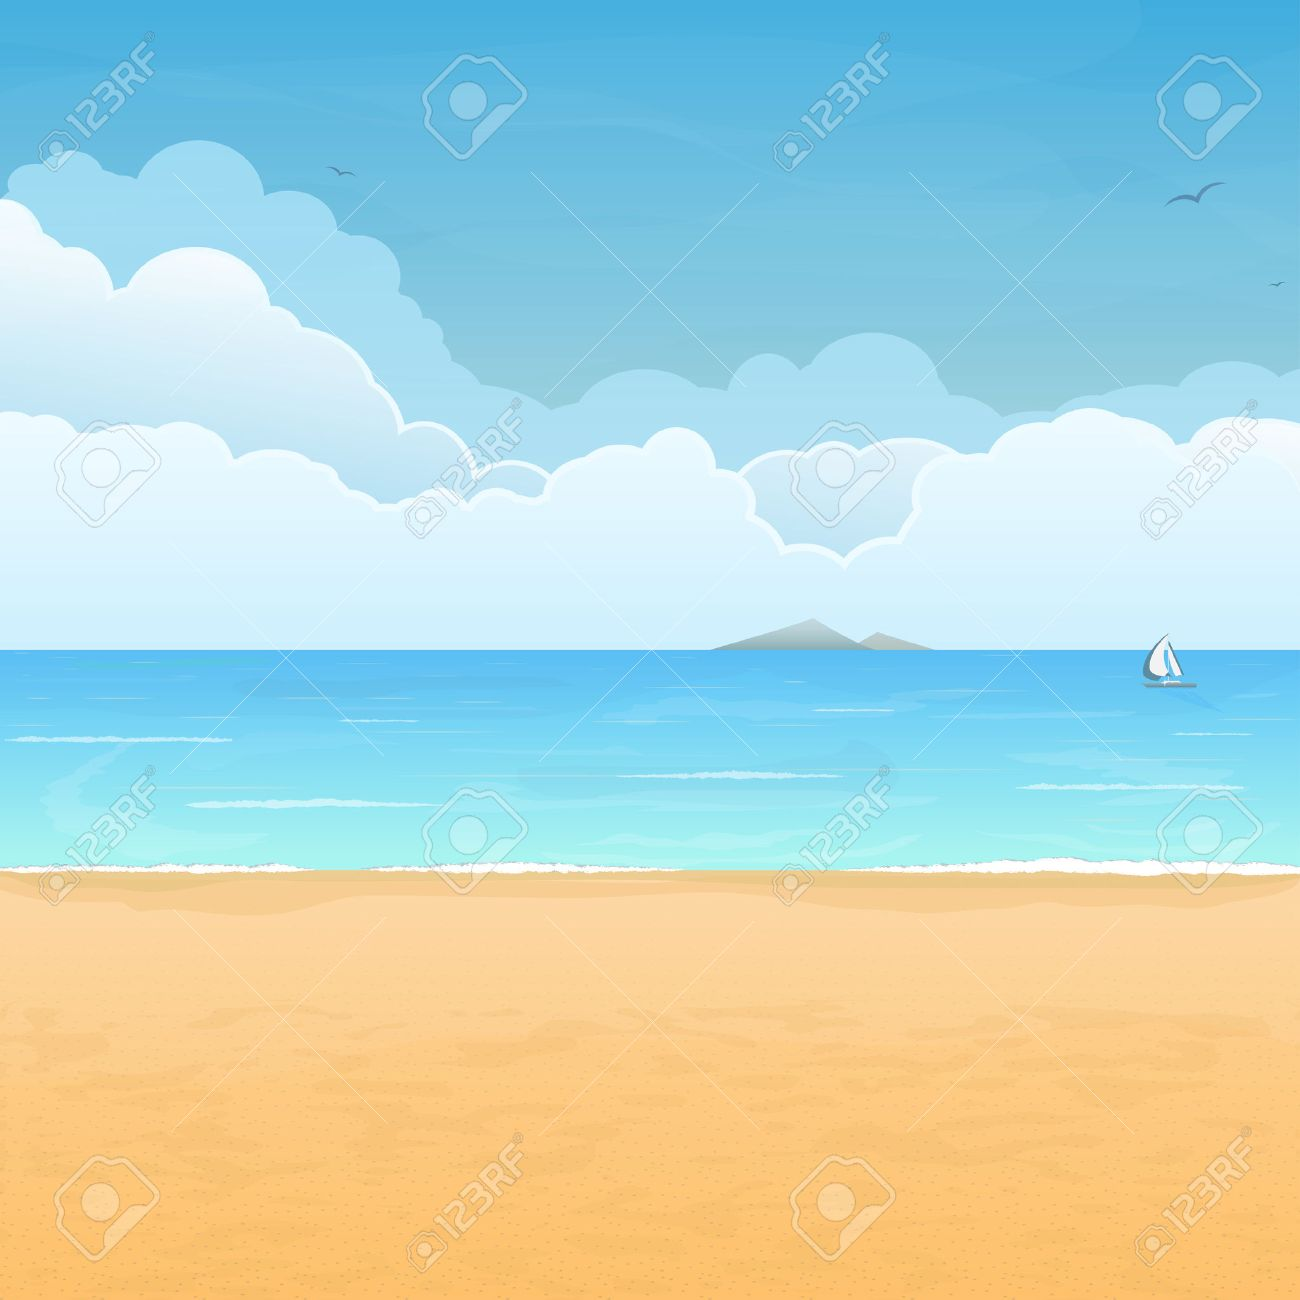 Tropical Sand Beach Boat In Sea Mountain Island On Horizon And Clouds Background